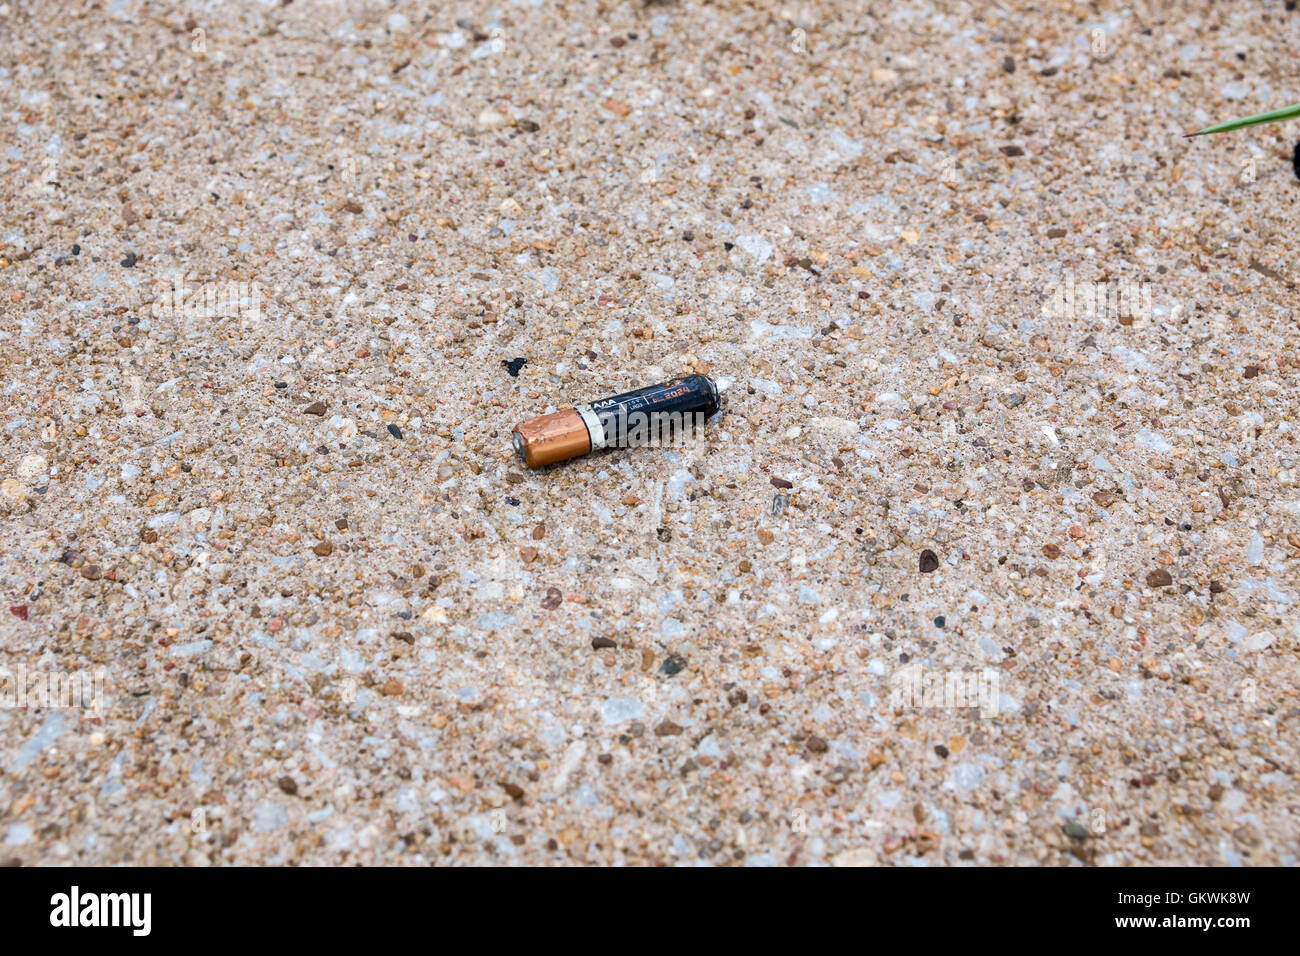 Crushed battery on pavement - Stock Image